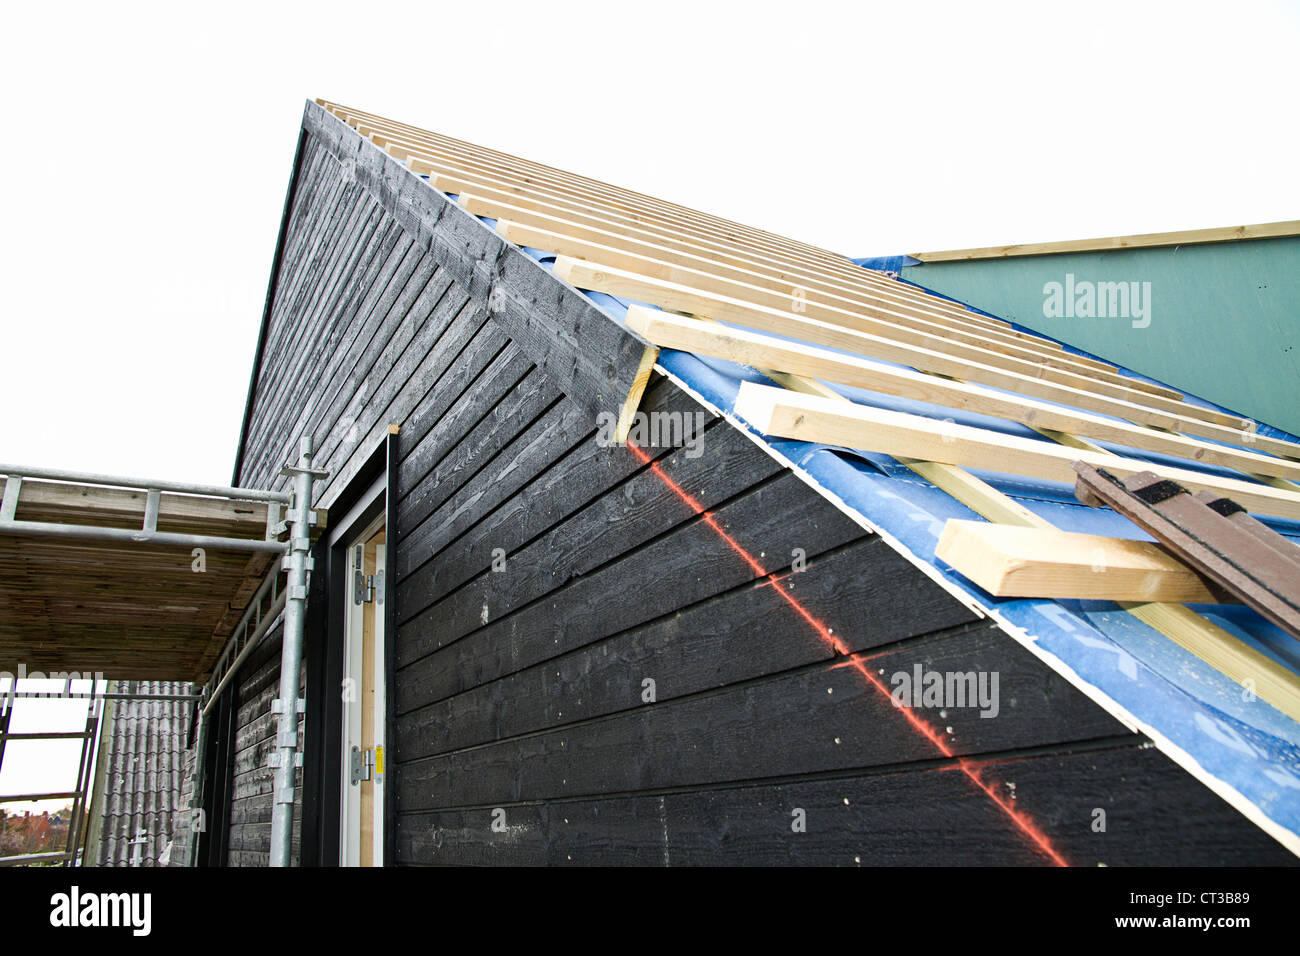 Siding of building under construction - Stock Image